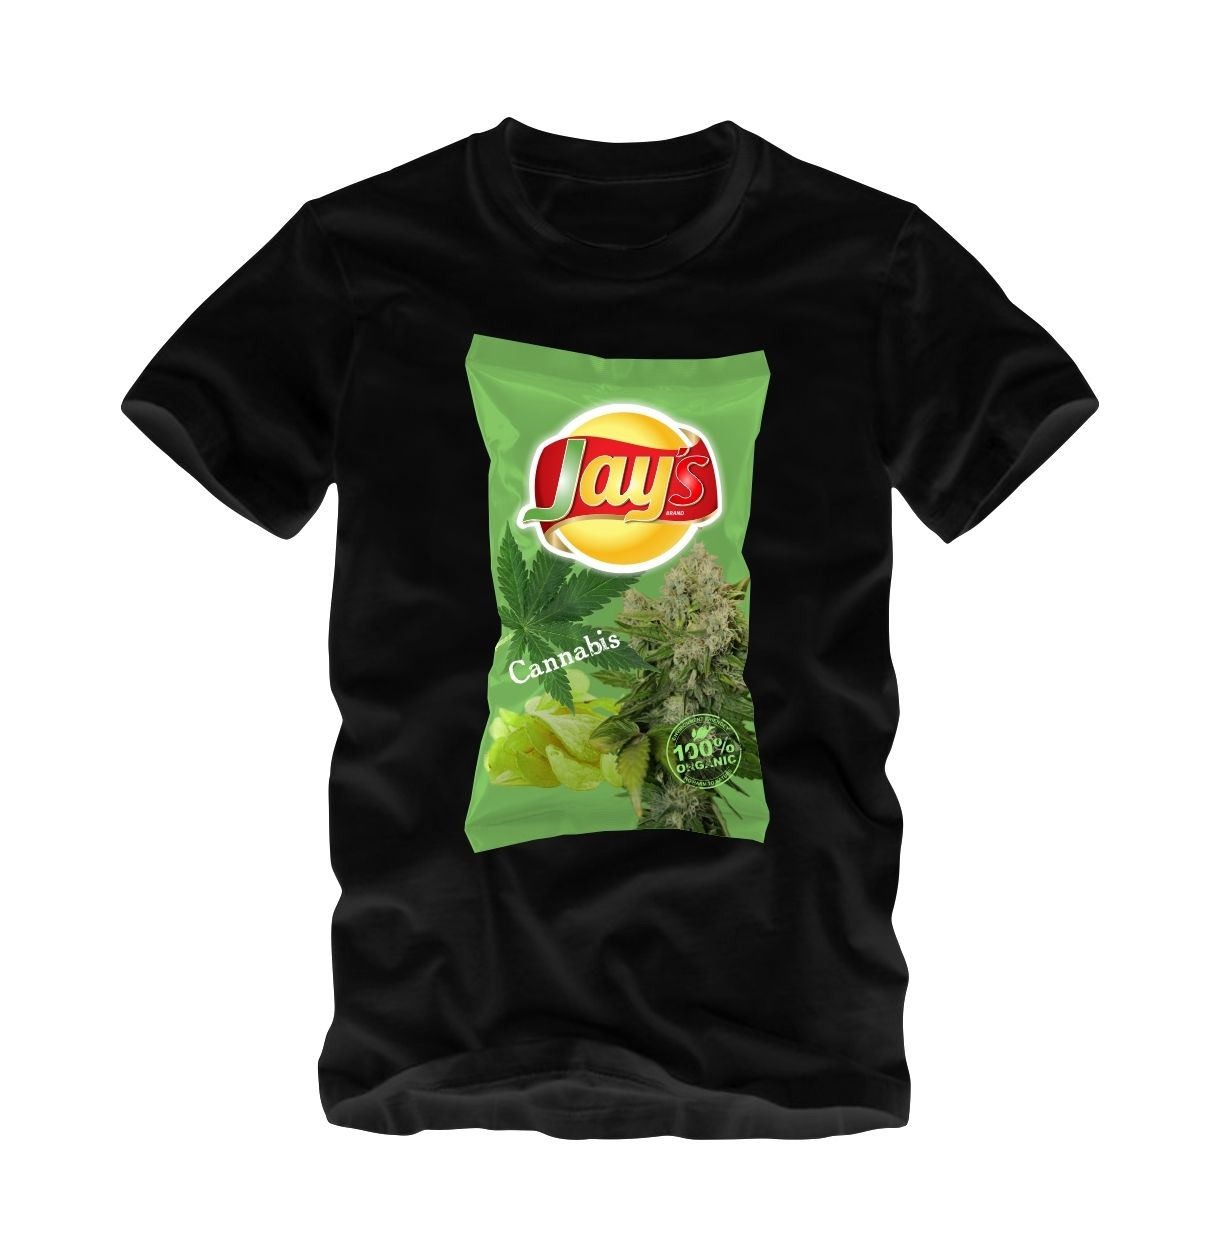 a1b87ce37 Cannabis 420 Weed Chips T-Shirt by Jay's | Weed 420 Cannibus T ...